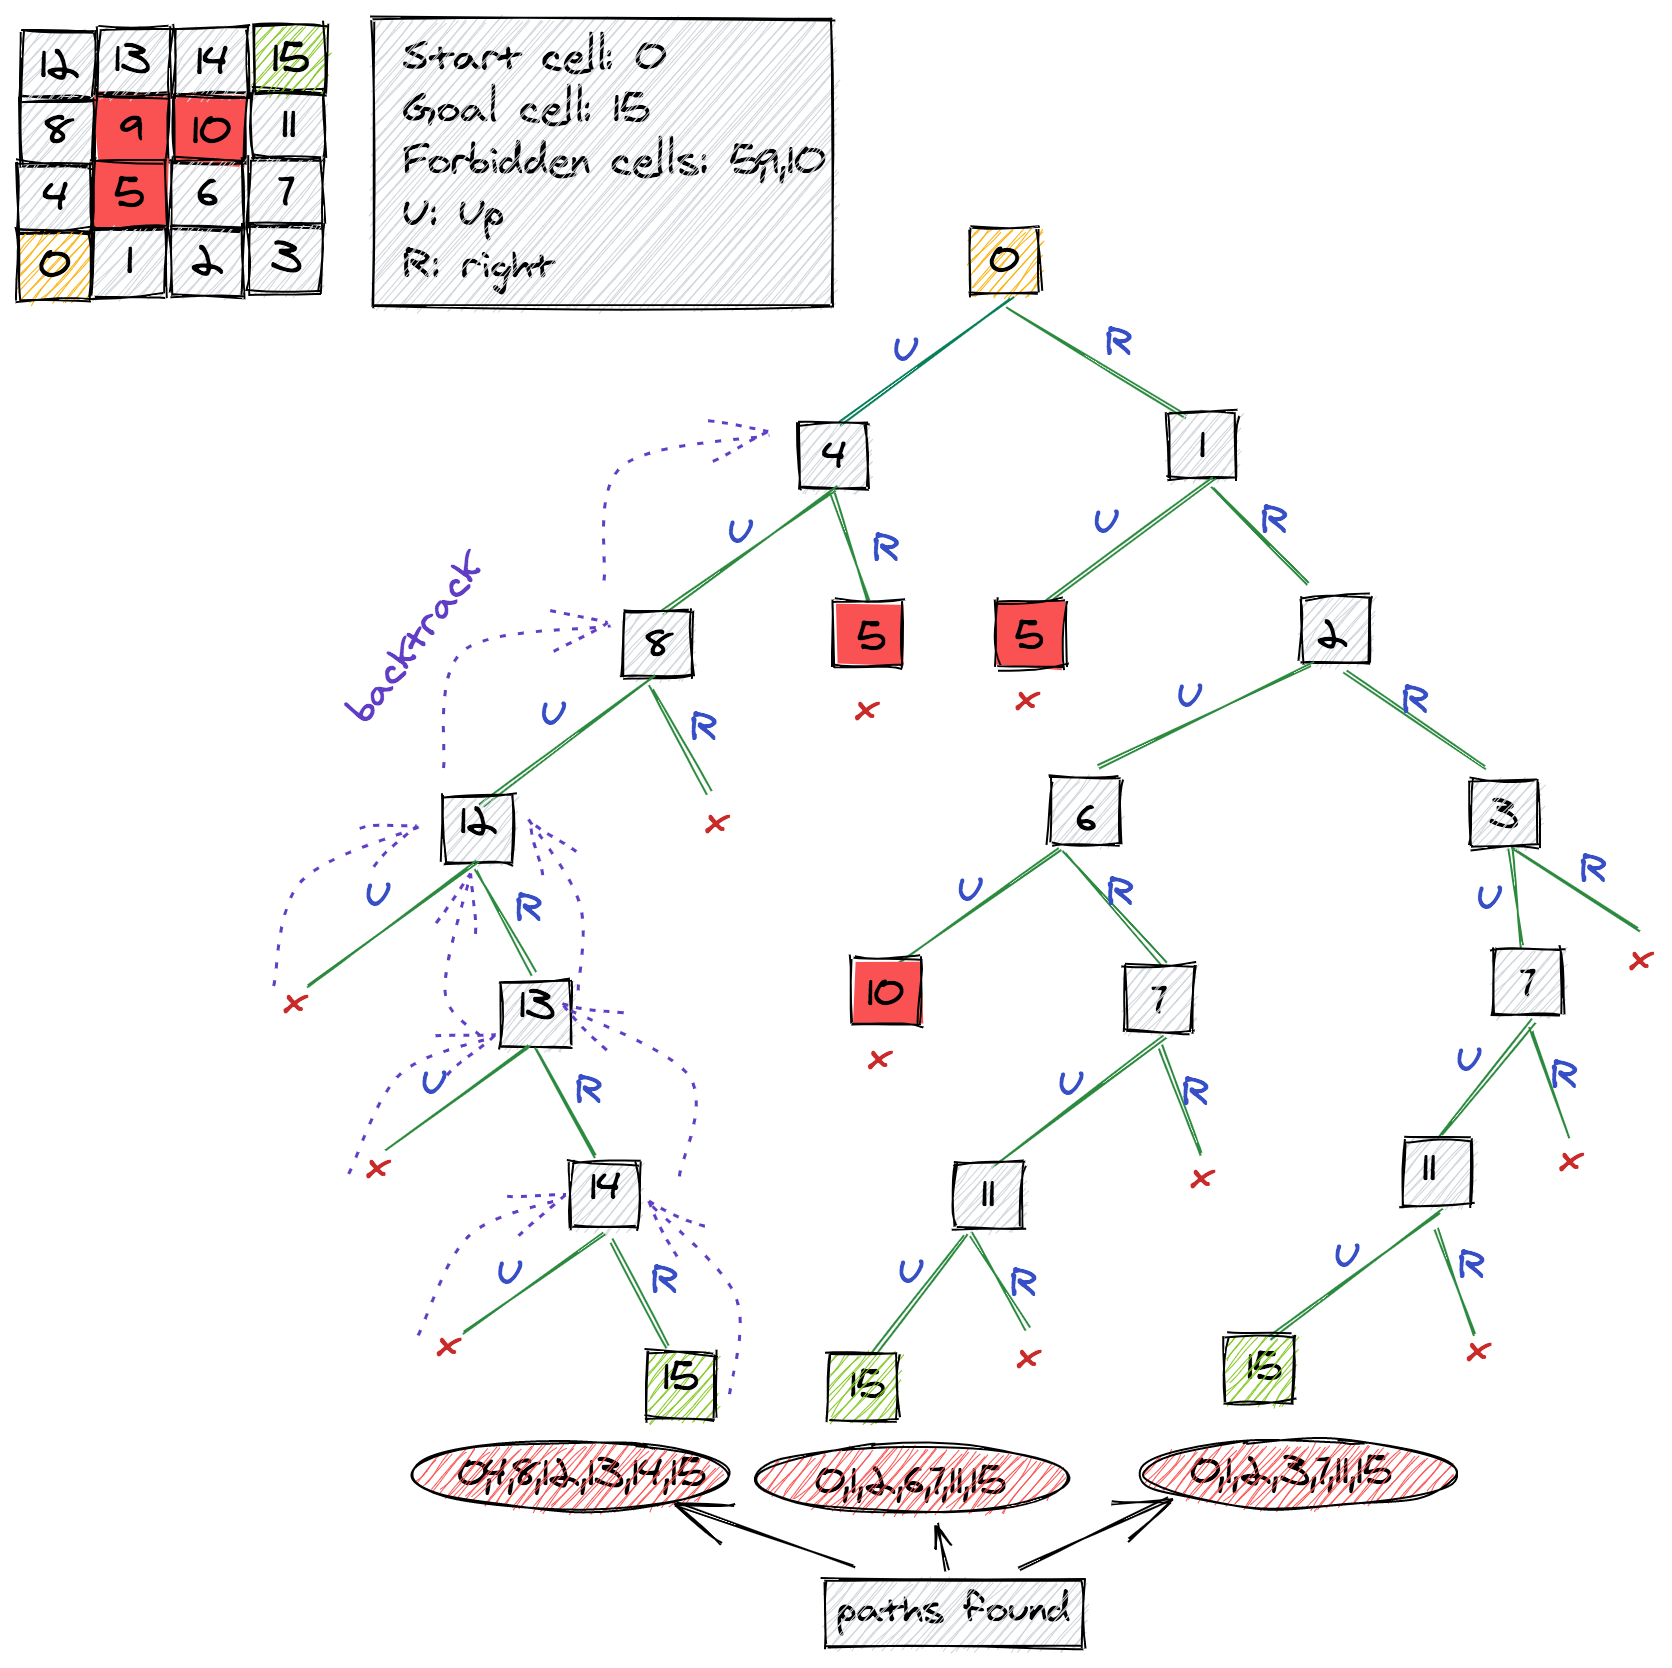 Recursive Backtracking For Combinatorial, Path Finding, and Sudoku Solver Backtracking Made Simple Backtracking is a very important concept in computer science and is used in many applications. General...